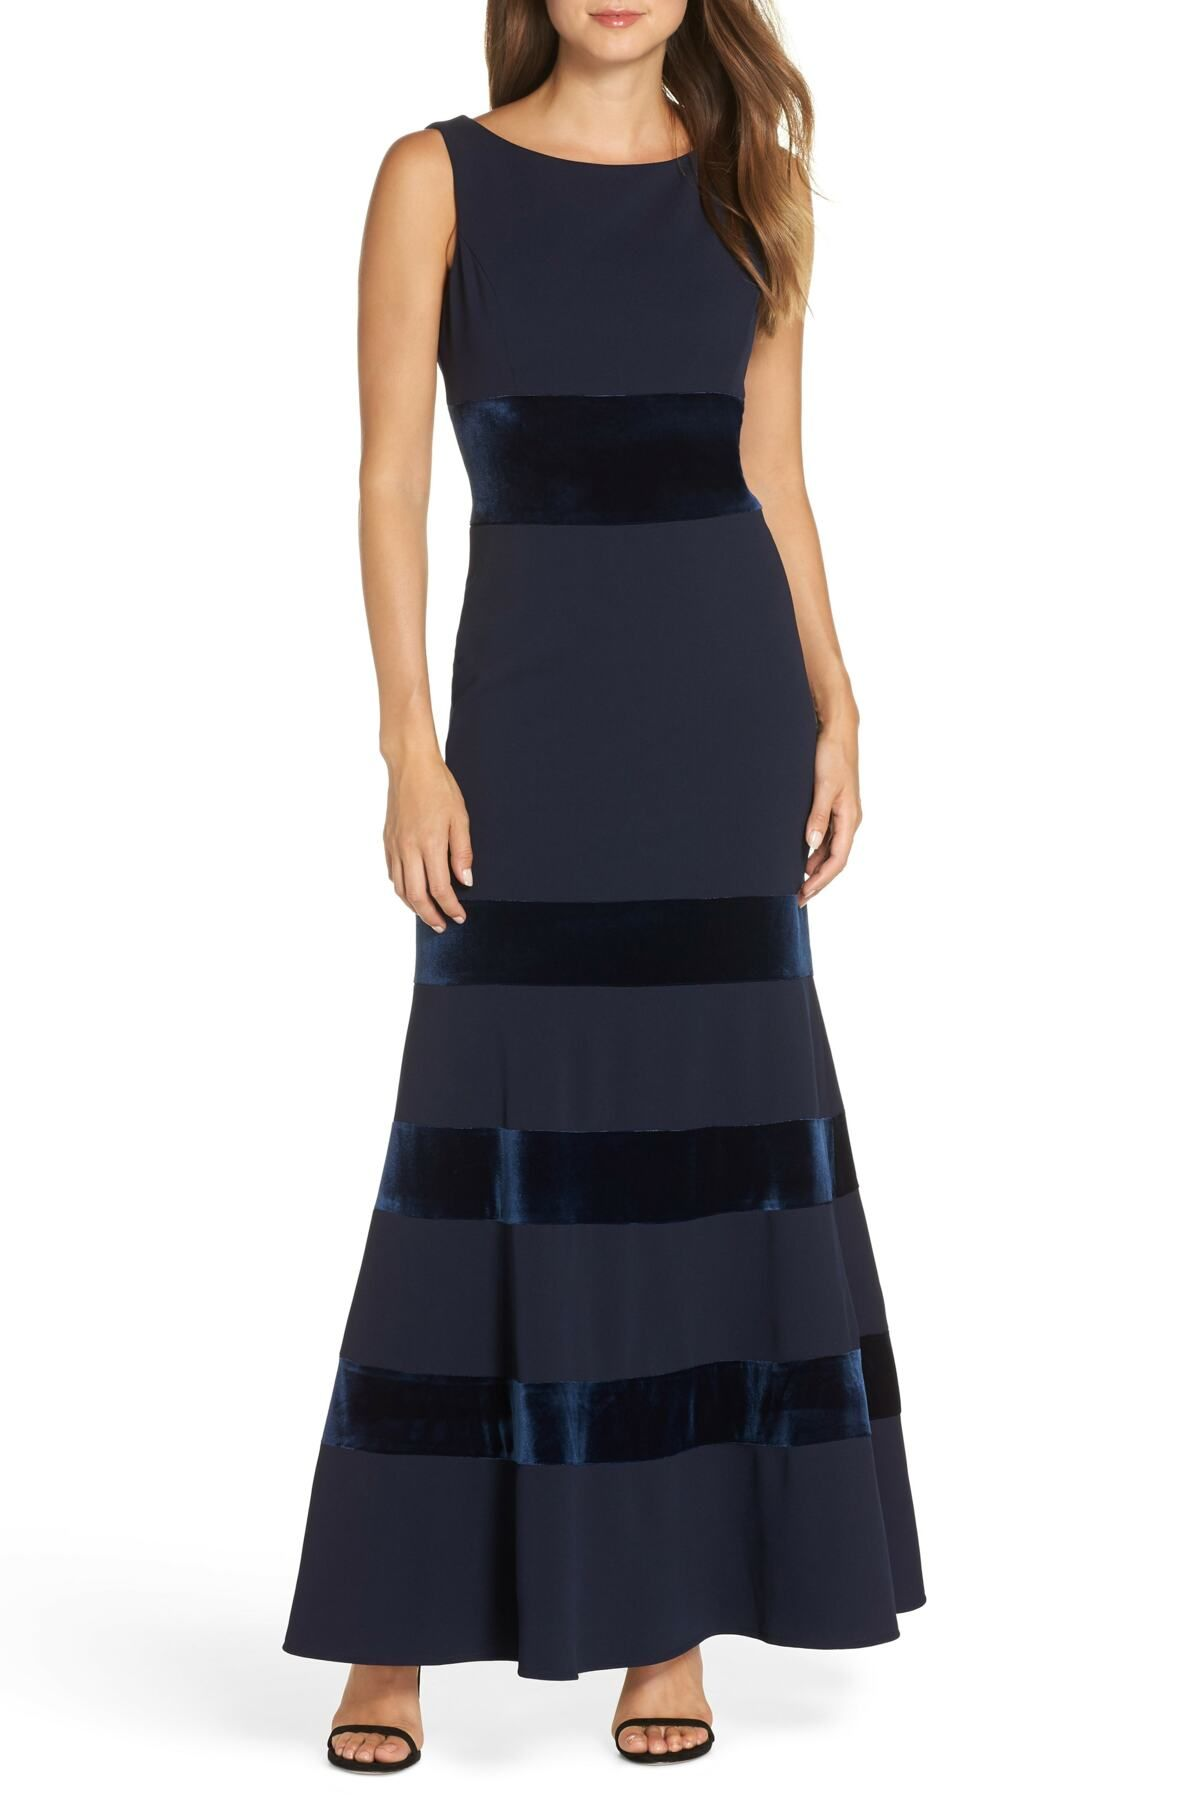 857343ae7b9 Vince Camuto - Velvet   Scuba Crepe Mermaid Gown is now 60% off. Free